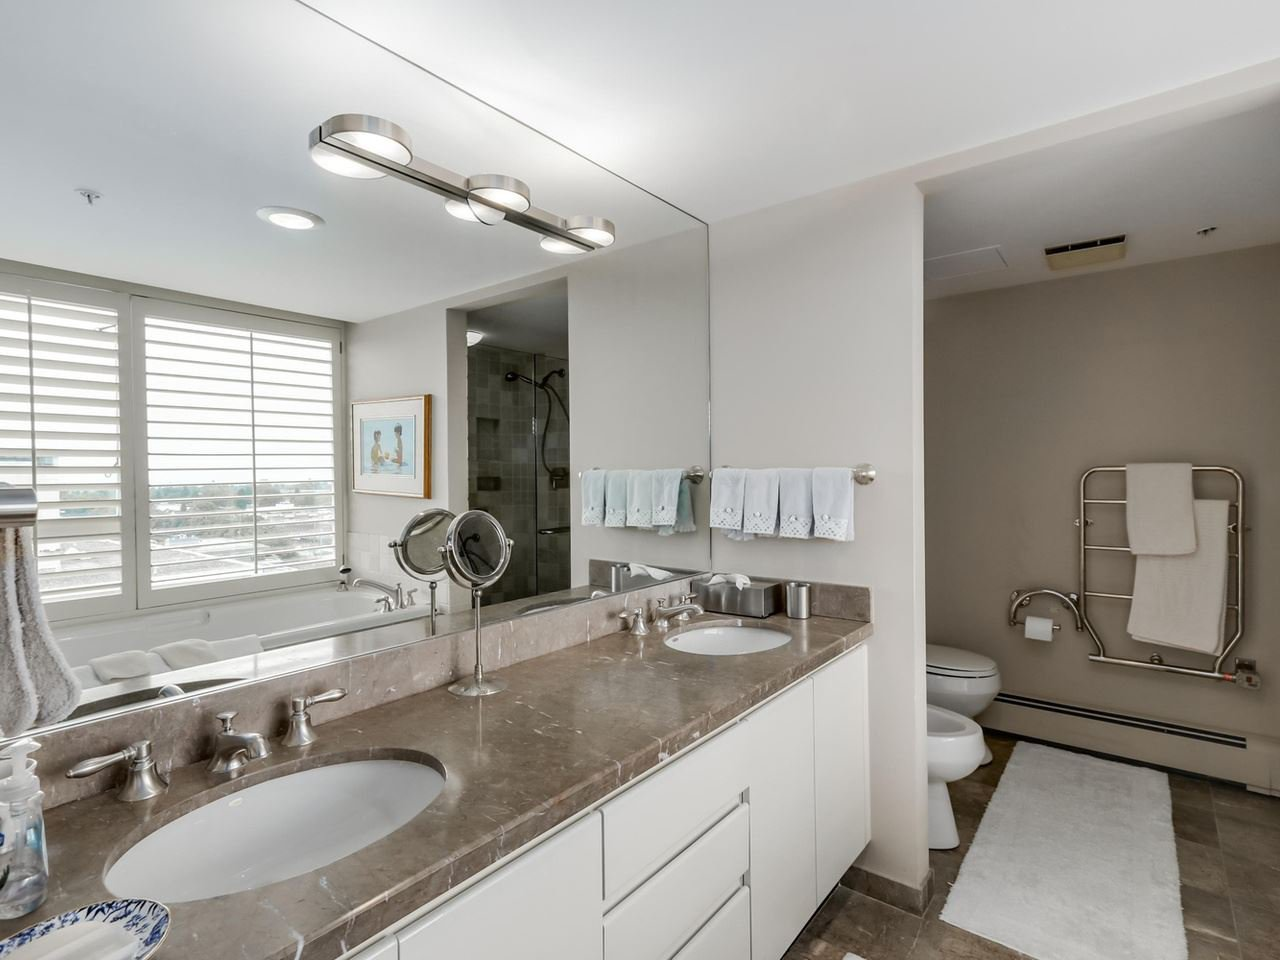 """Photo 15: Photos: PH1 2108 W 38TH Avenue in Vancouver: Kerrisdale Condo for sale in """"THE WILSHIRE"""" (Vancouver West)  : MLS®# R2072443"""